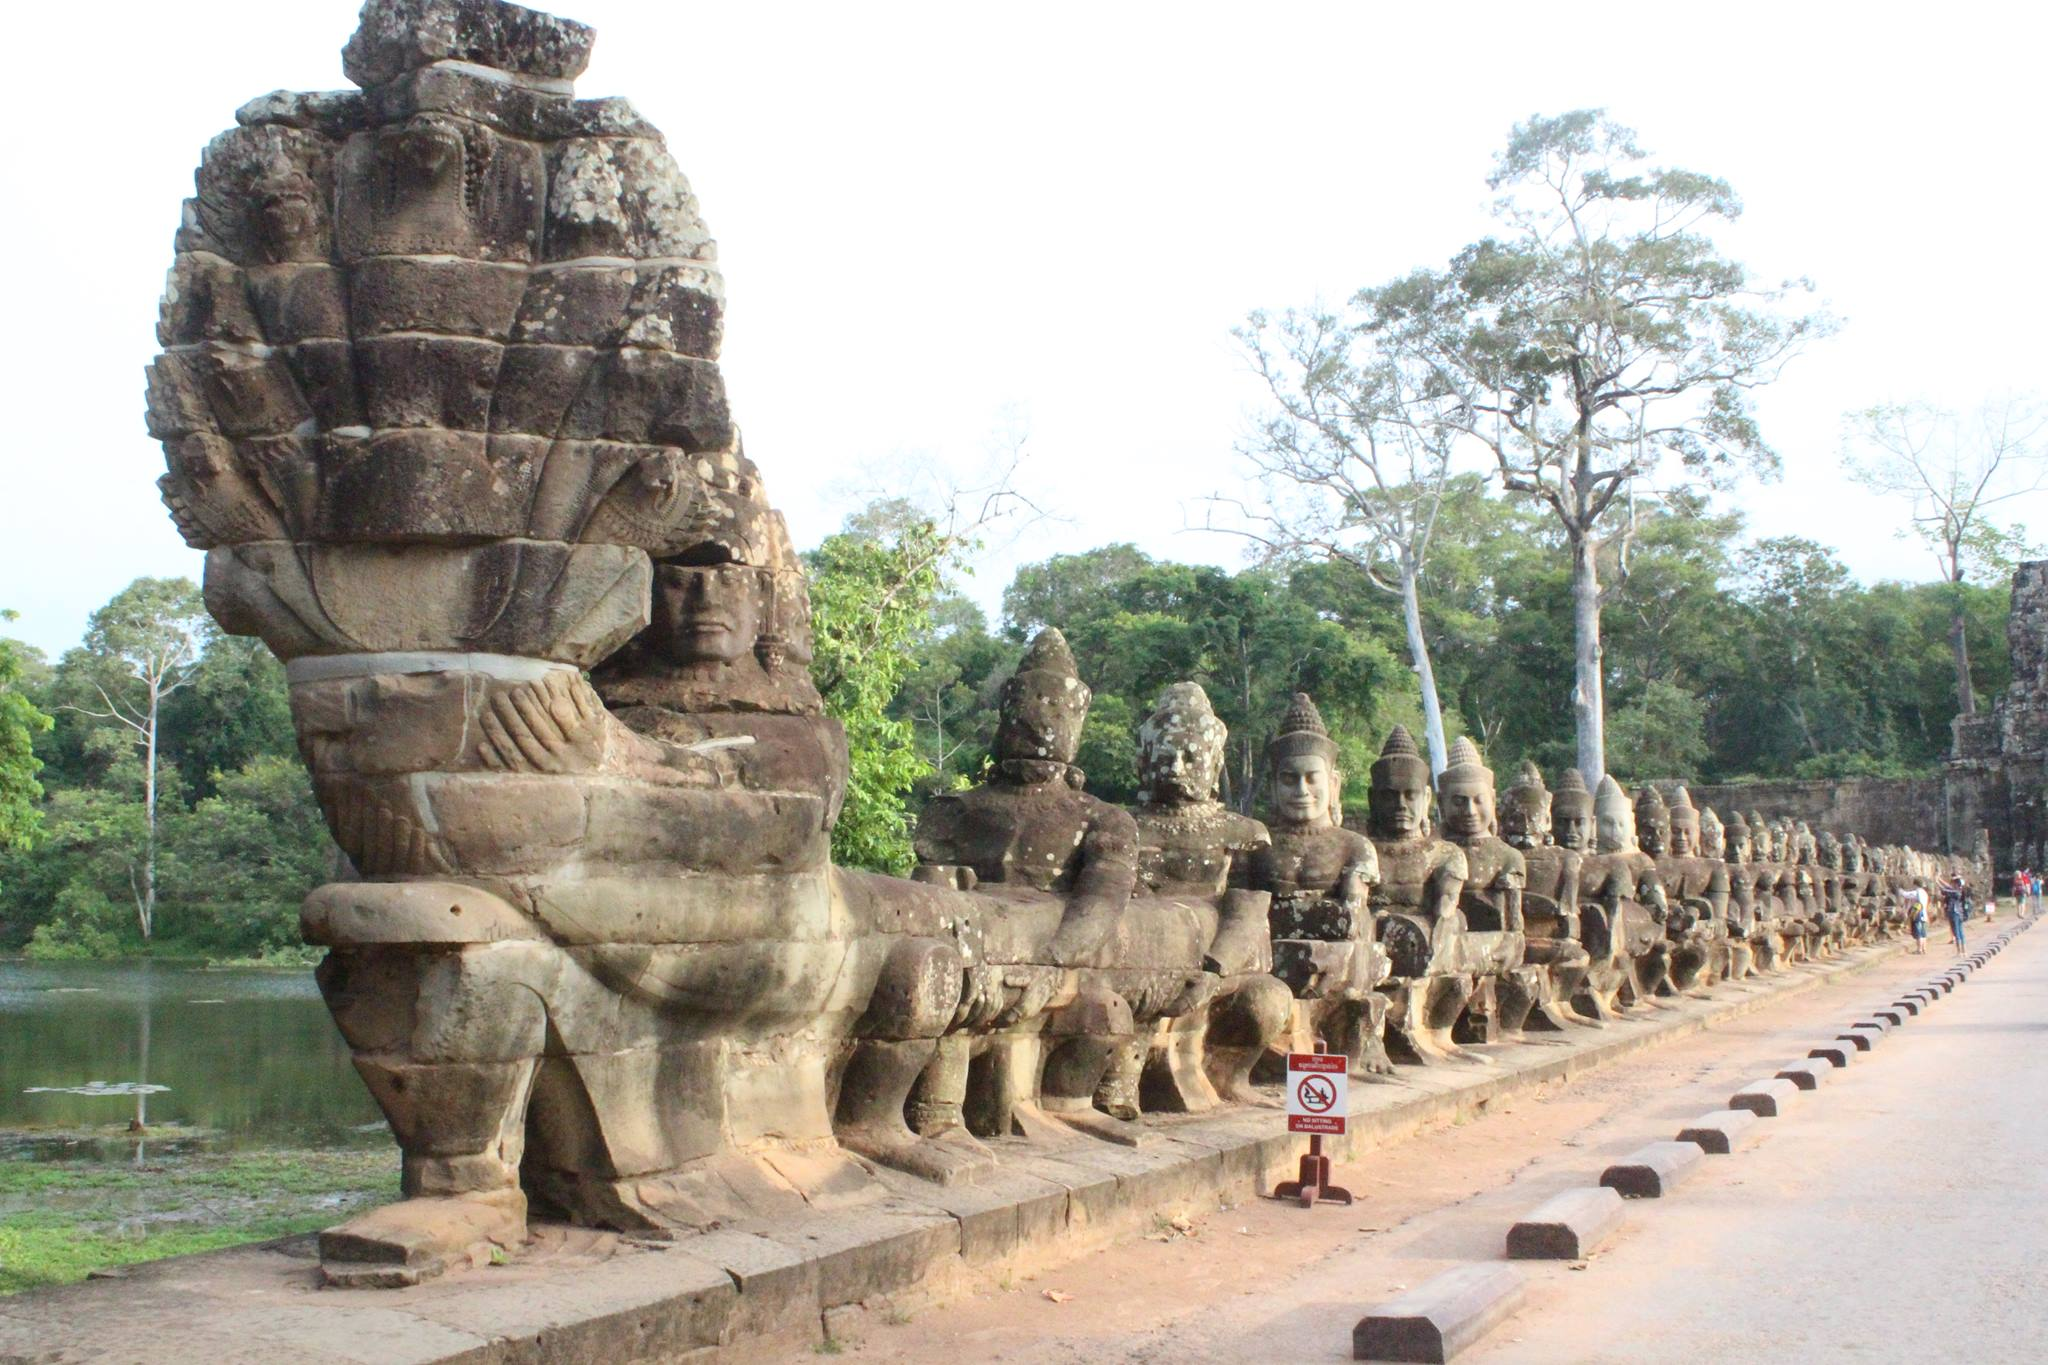 Green Cultural Travel - Cambodia - Siem Reap - Bridge with statues